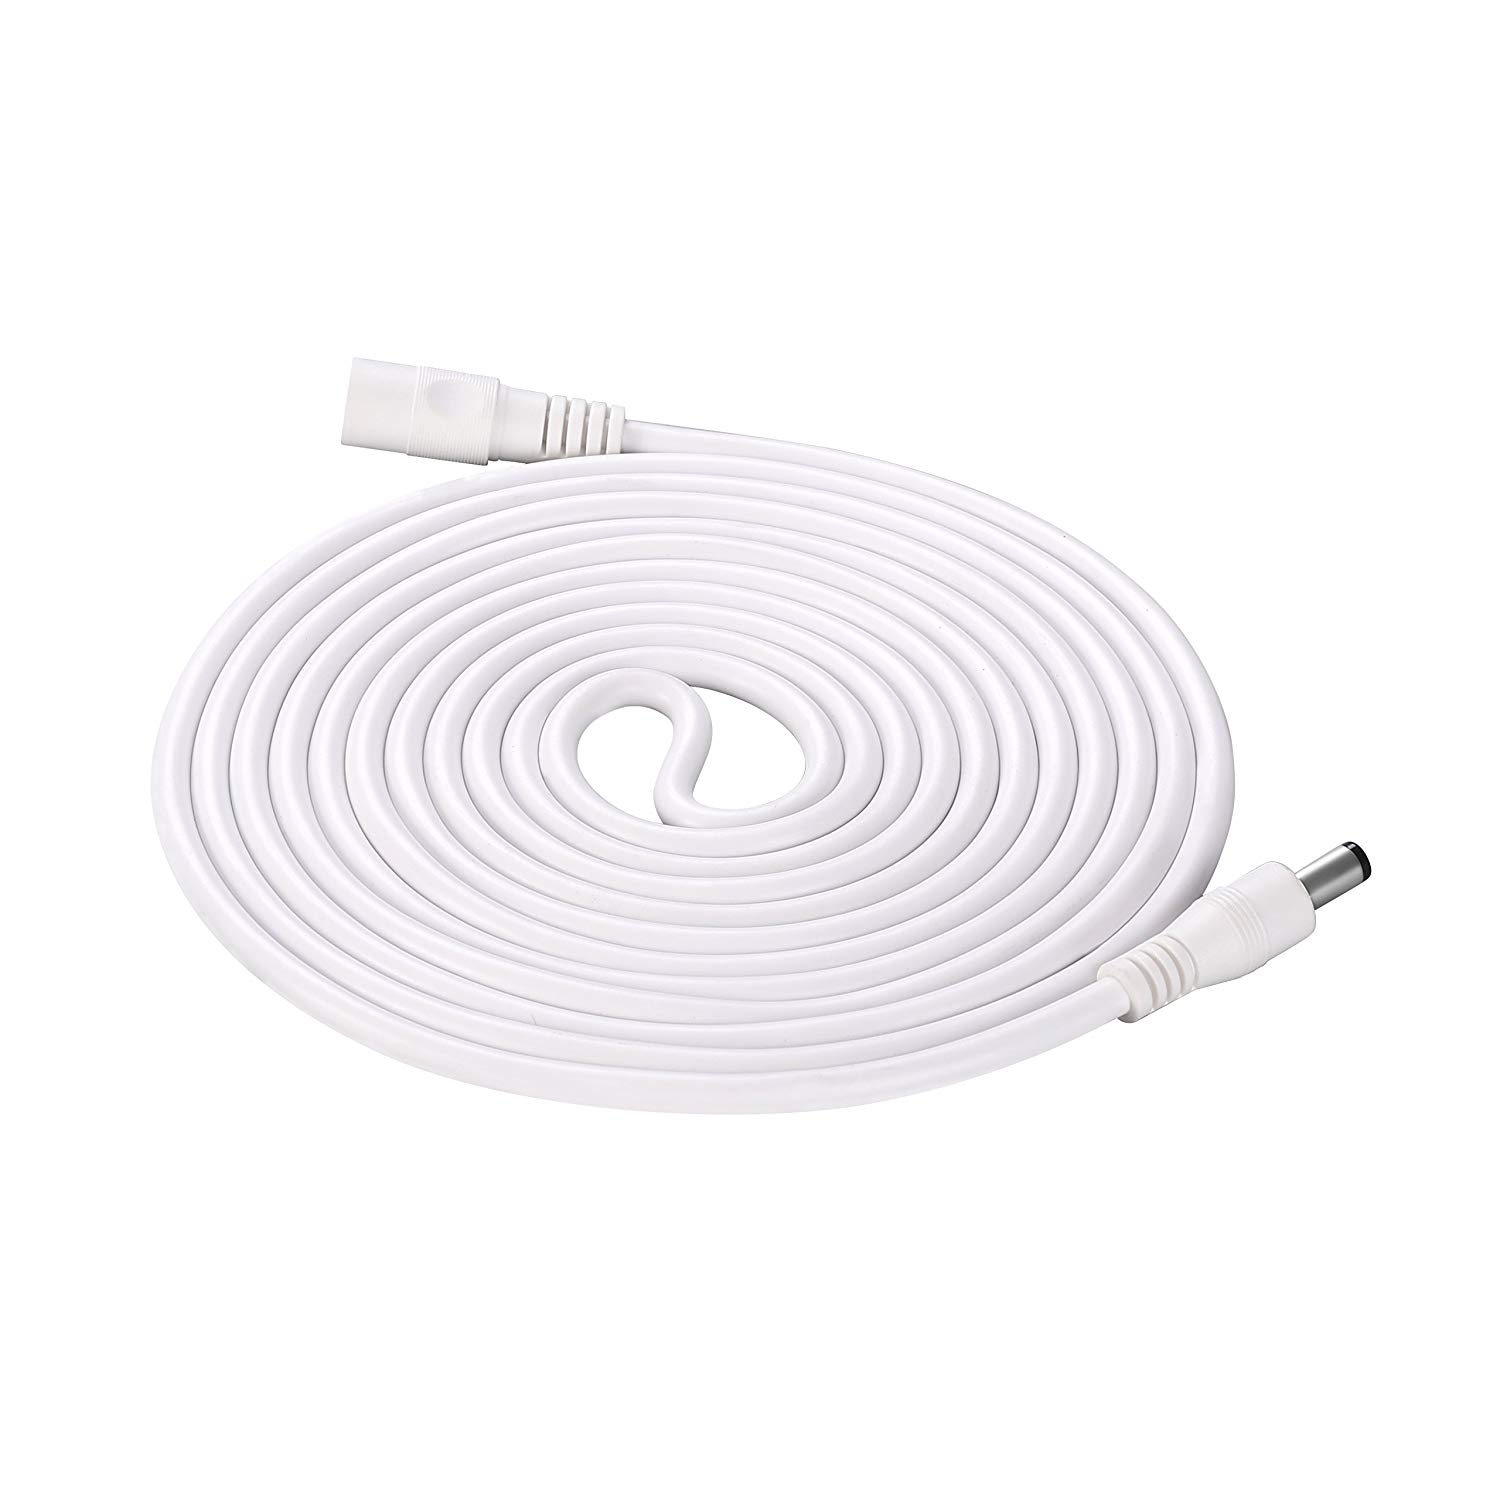 Cheap Extension Cord Female Plug Find Extension Cord